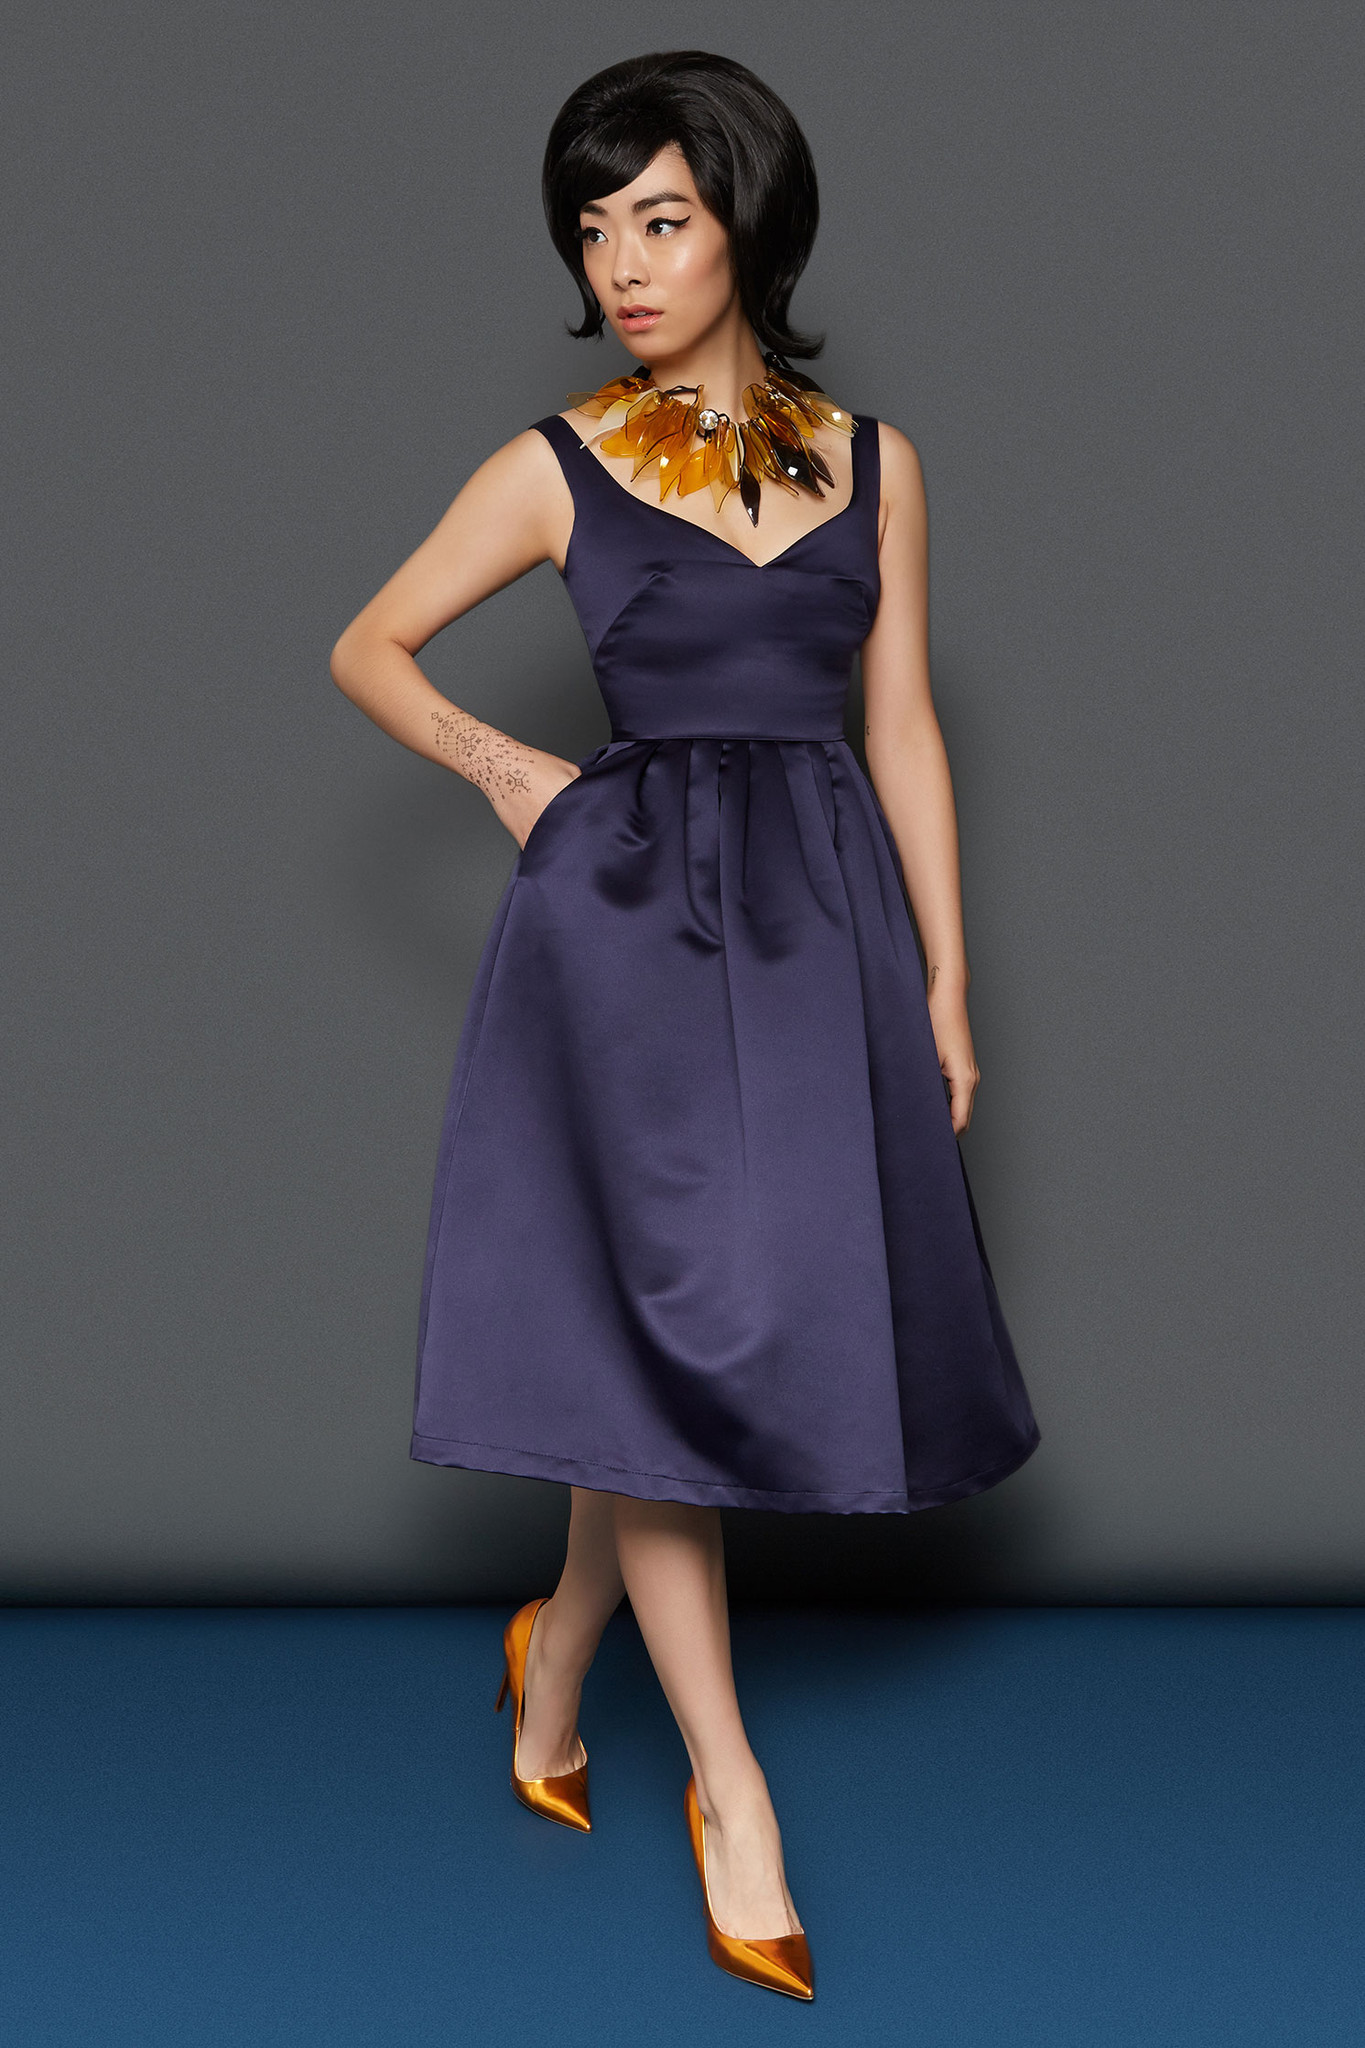 Sweetheart-Prom-Dress-Navy-Modshot.jpg